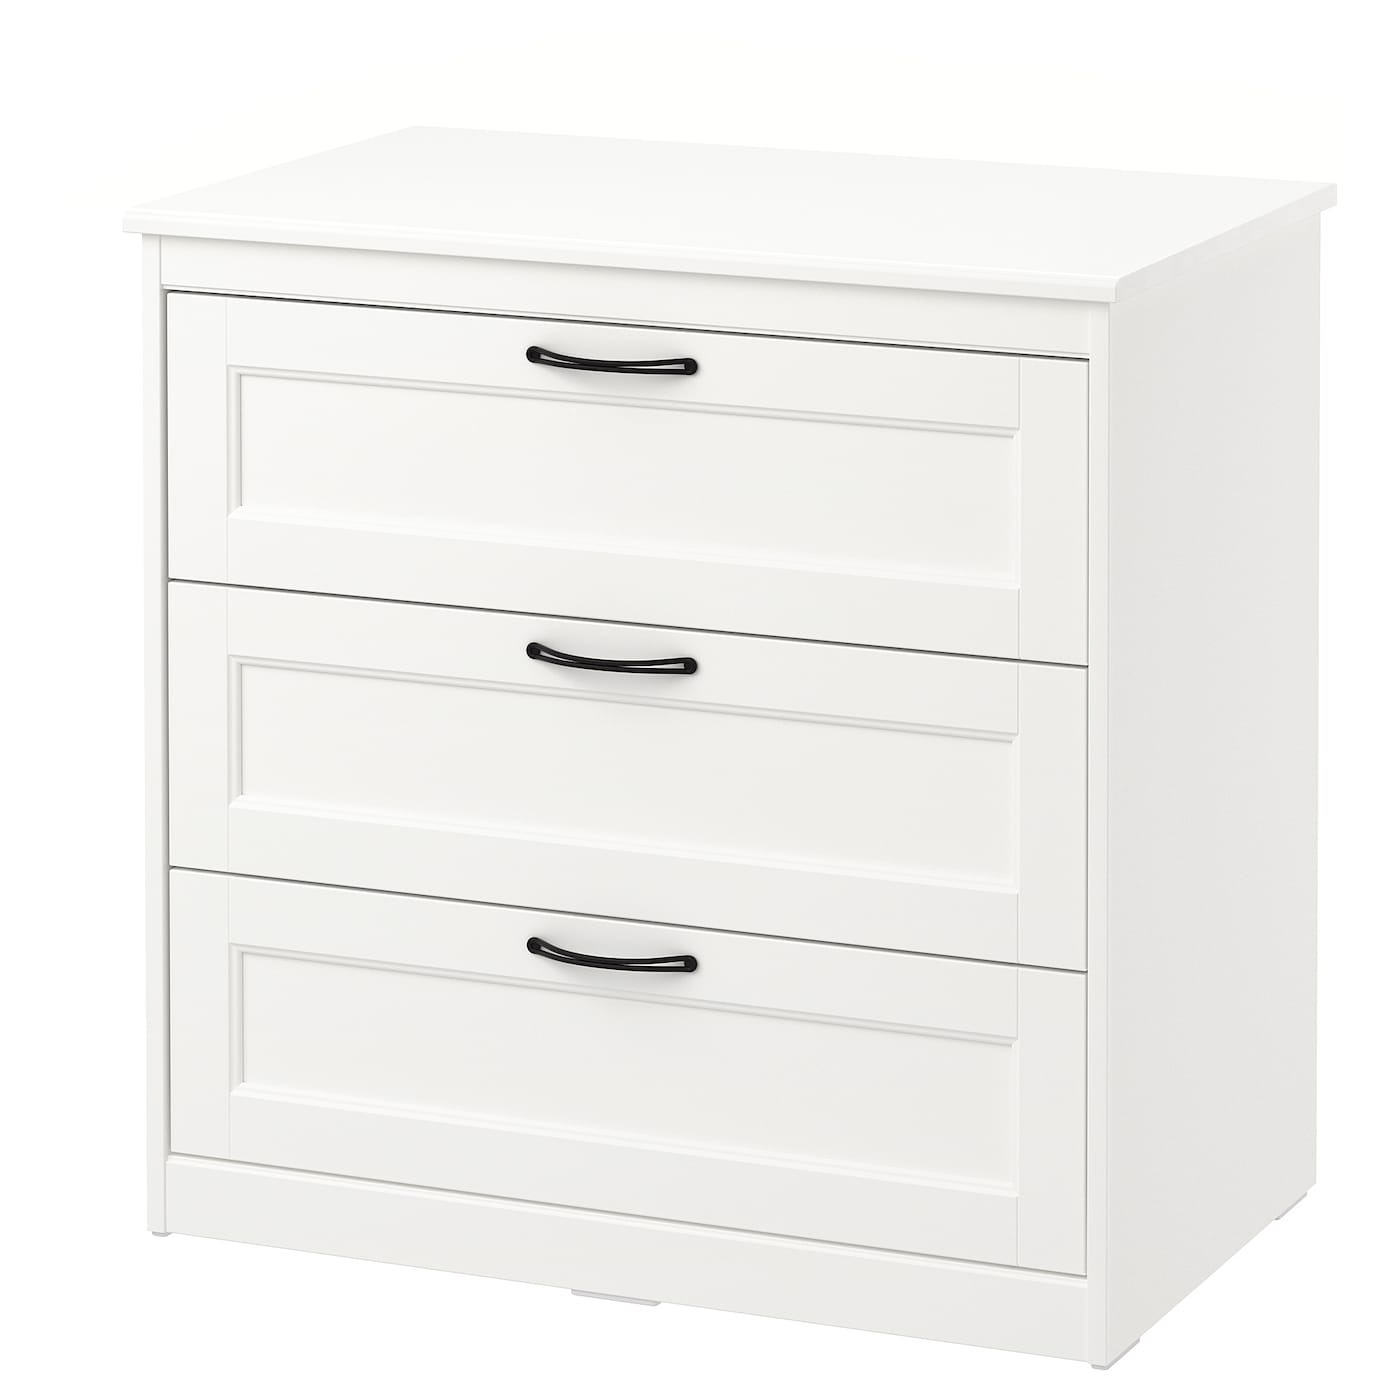 songesand chest of 3 drawers white 82 x 81 cm ikea. Black Bedroom Furniture Sets. Home Design Ideas